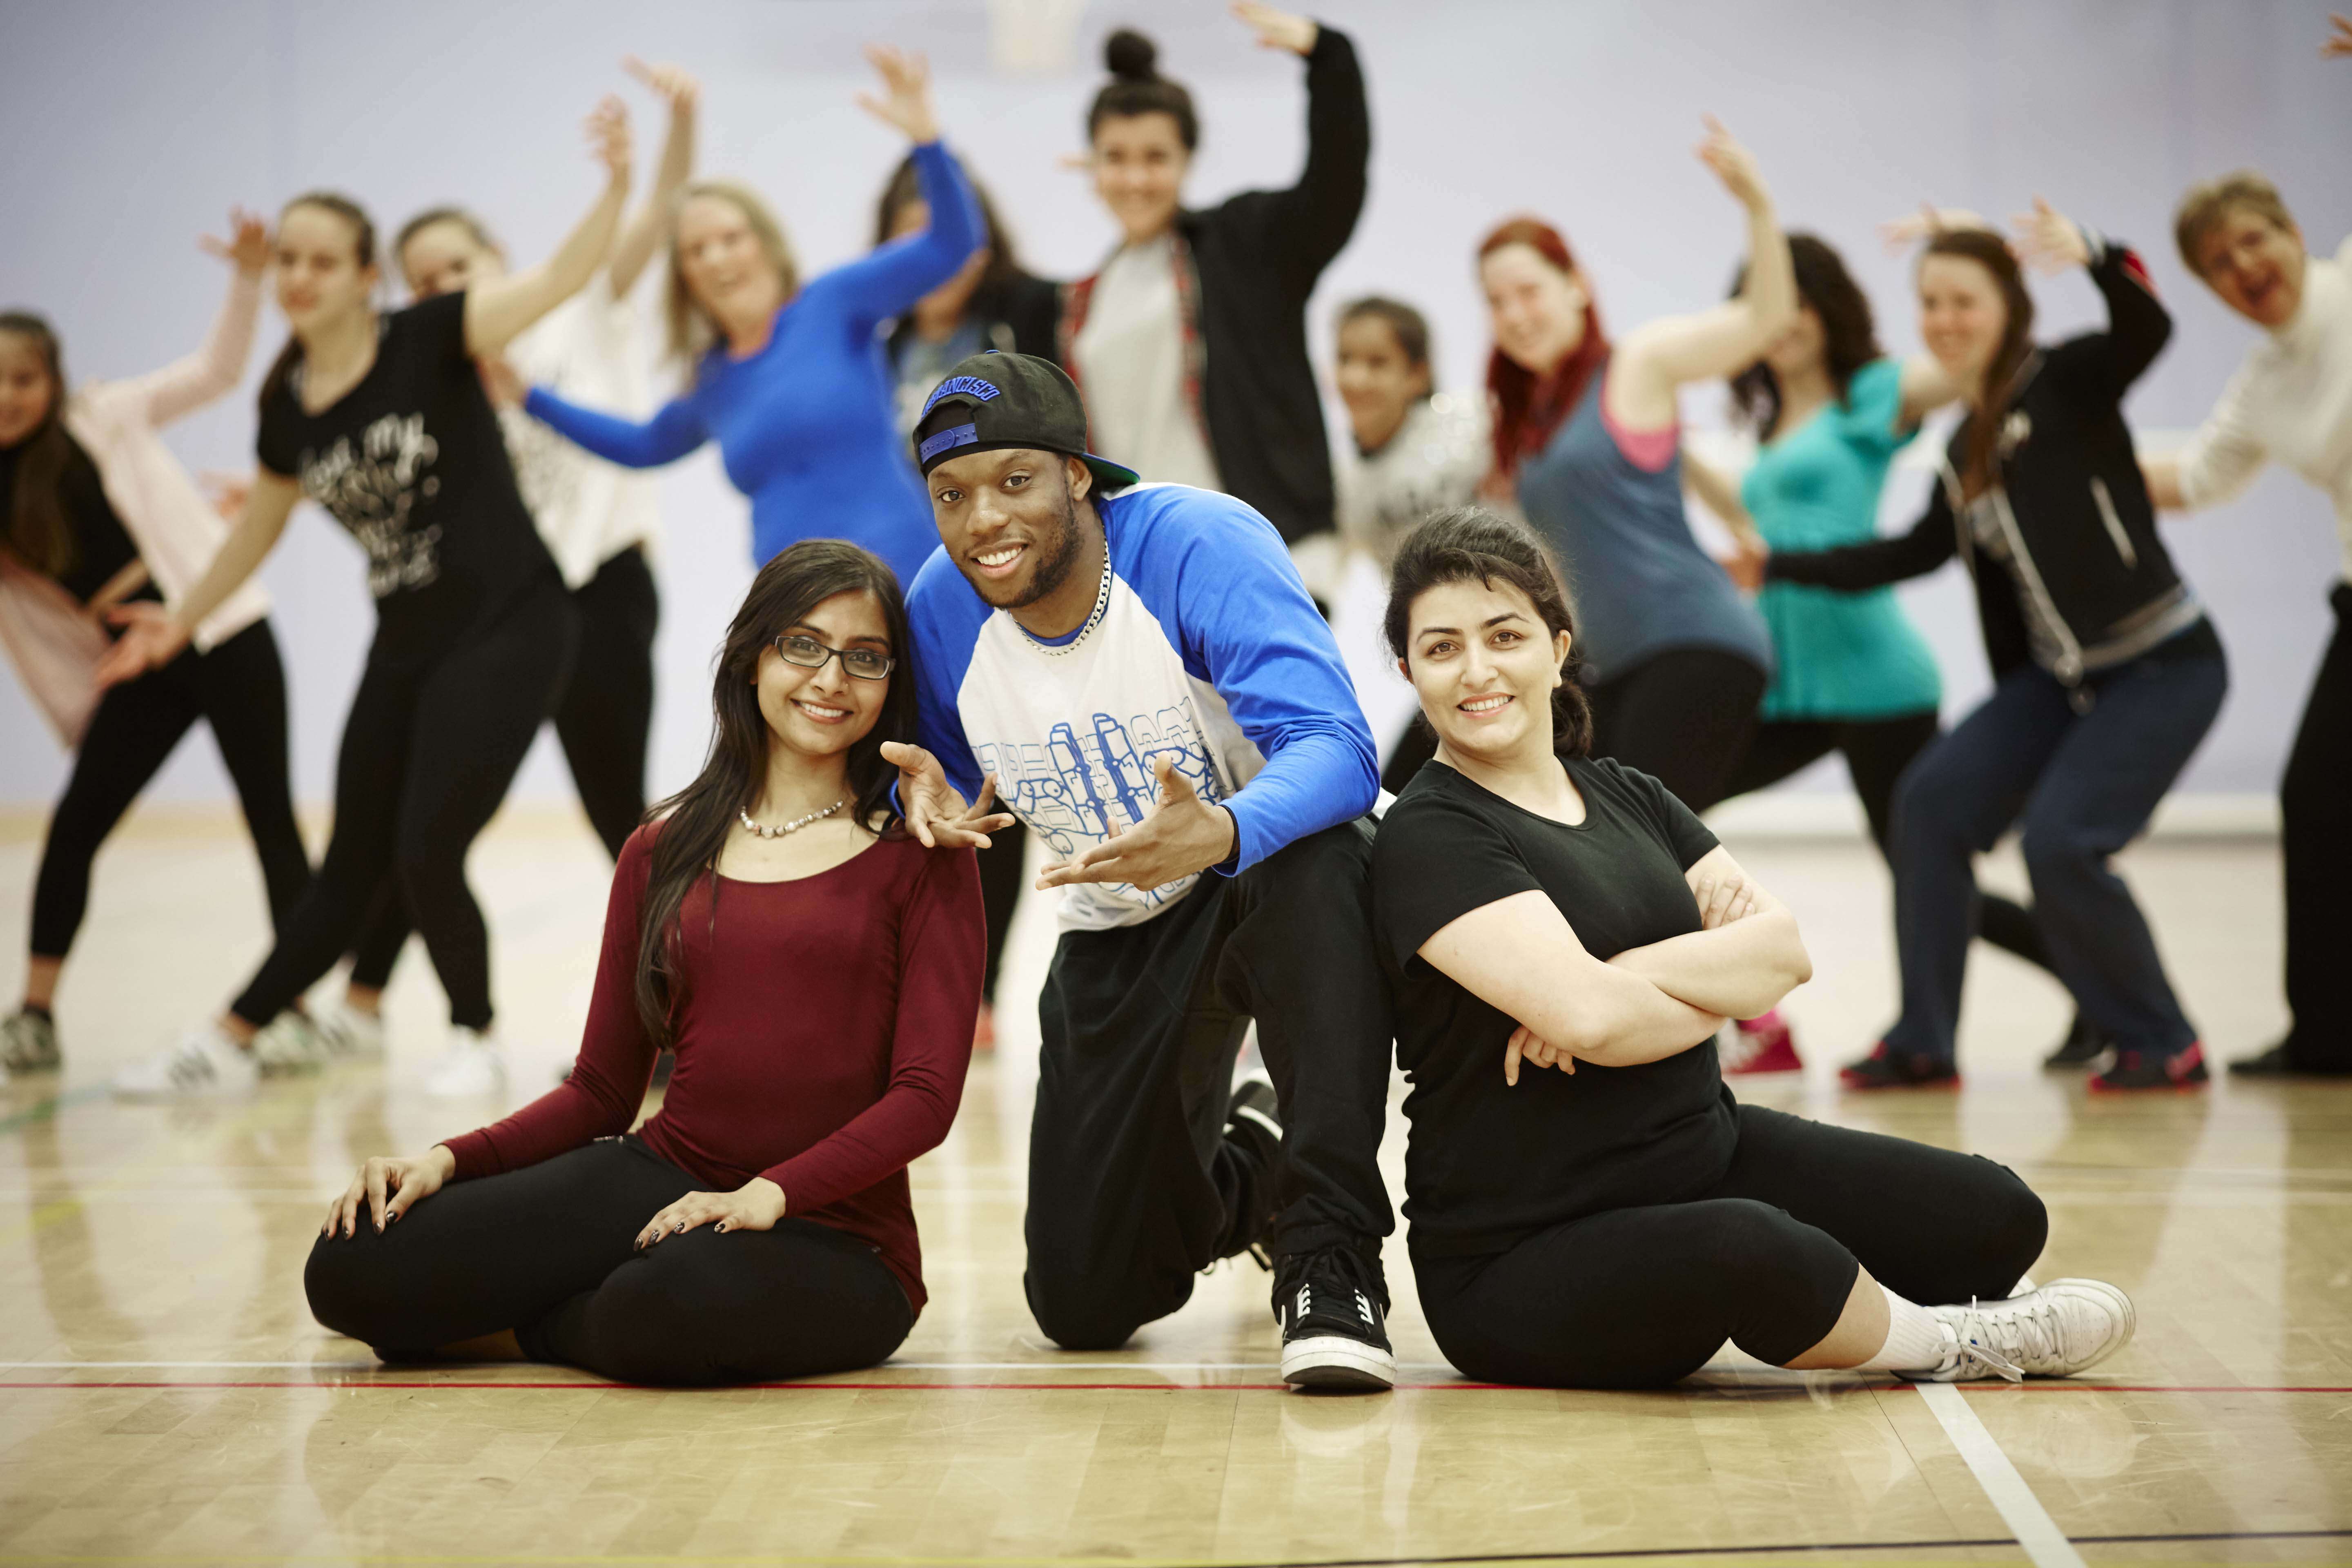 Chandni Patel (24) and Solmaz Rohani (33) from Salford with hip hop artist Syxx Issac from Blue Boy Entertainment at the taster session  at the Oasis Academy in Salford